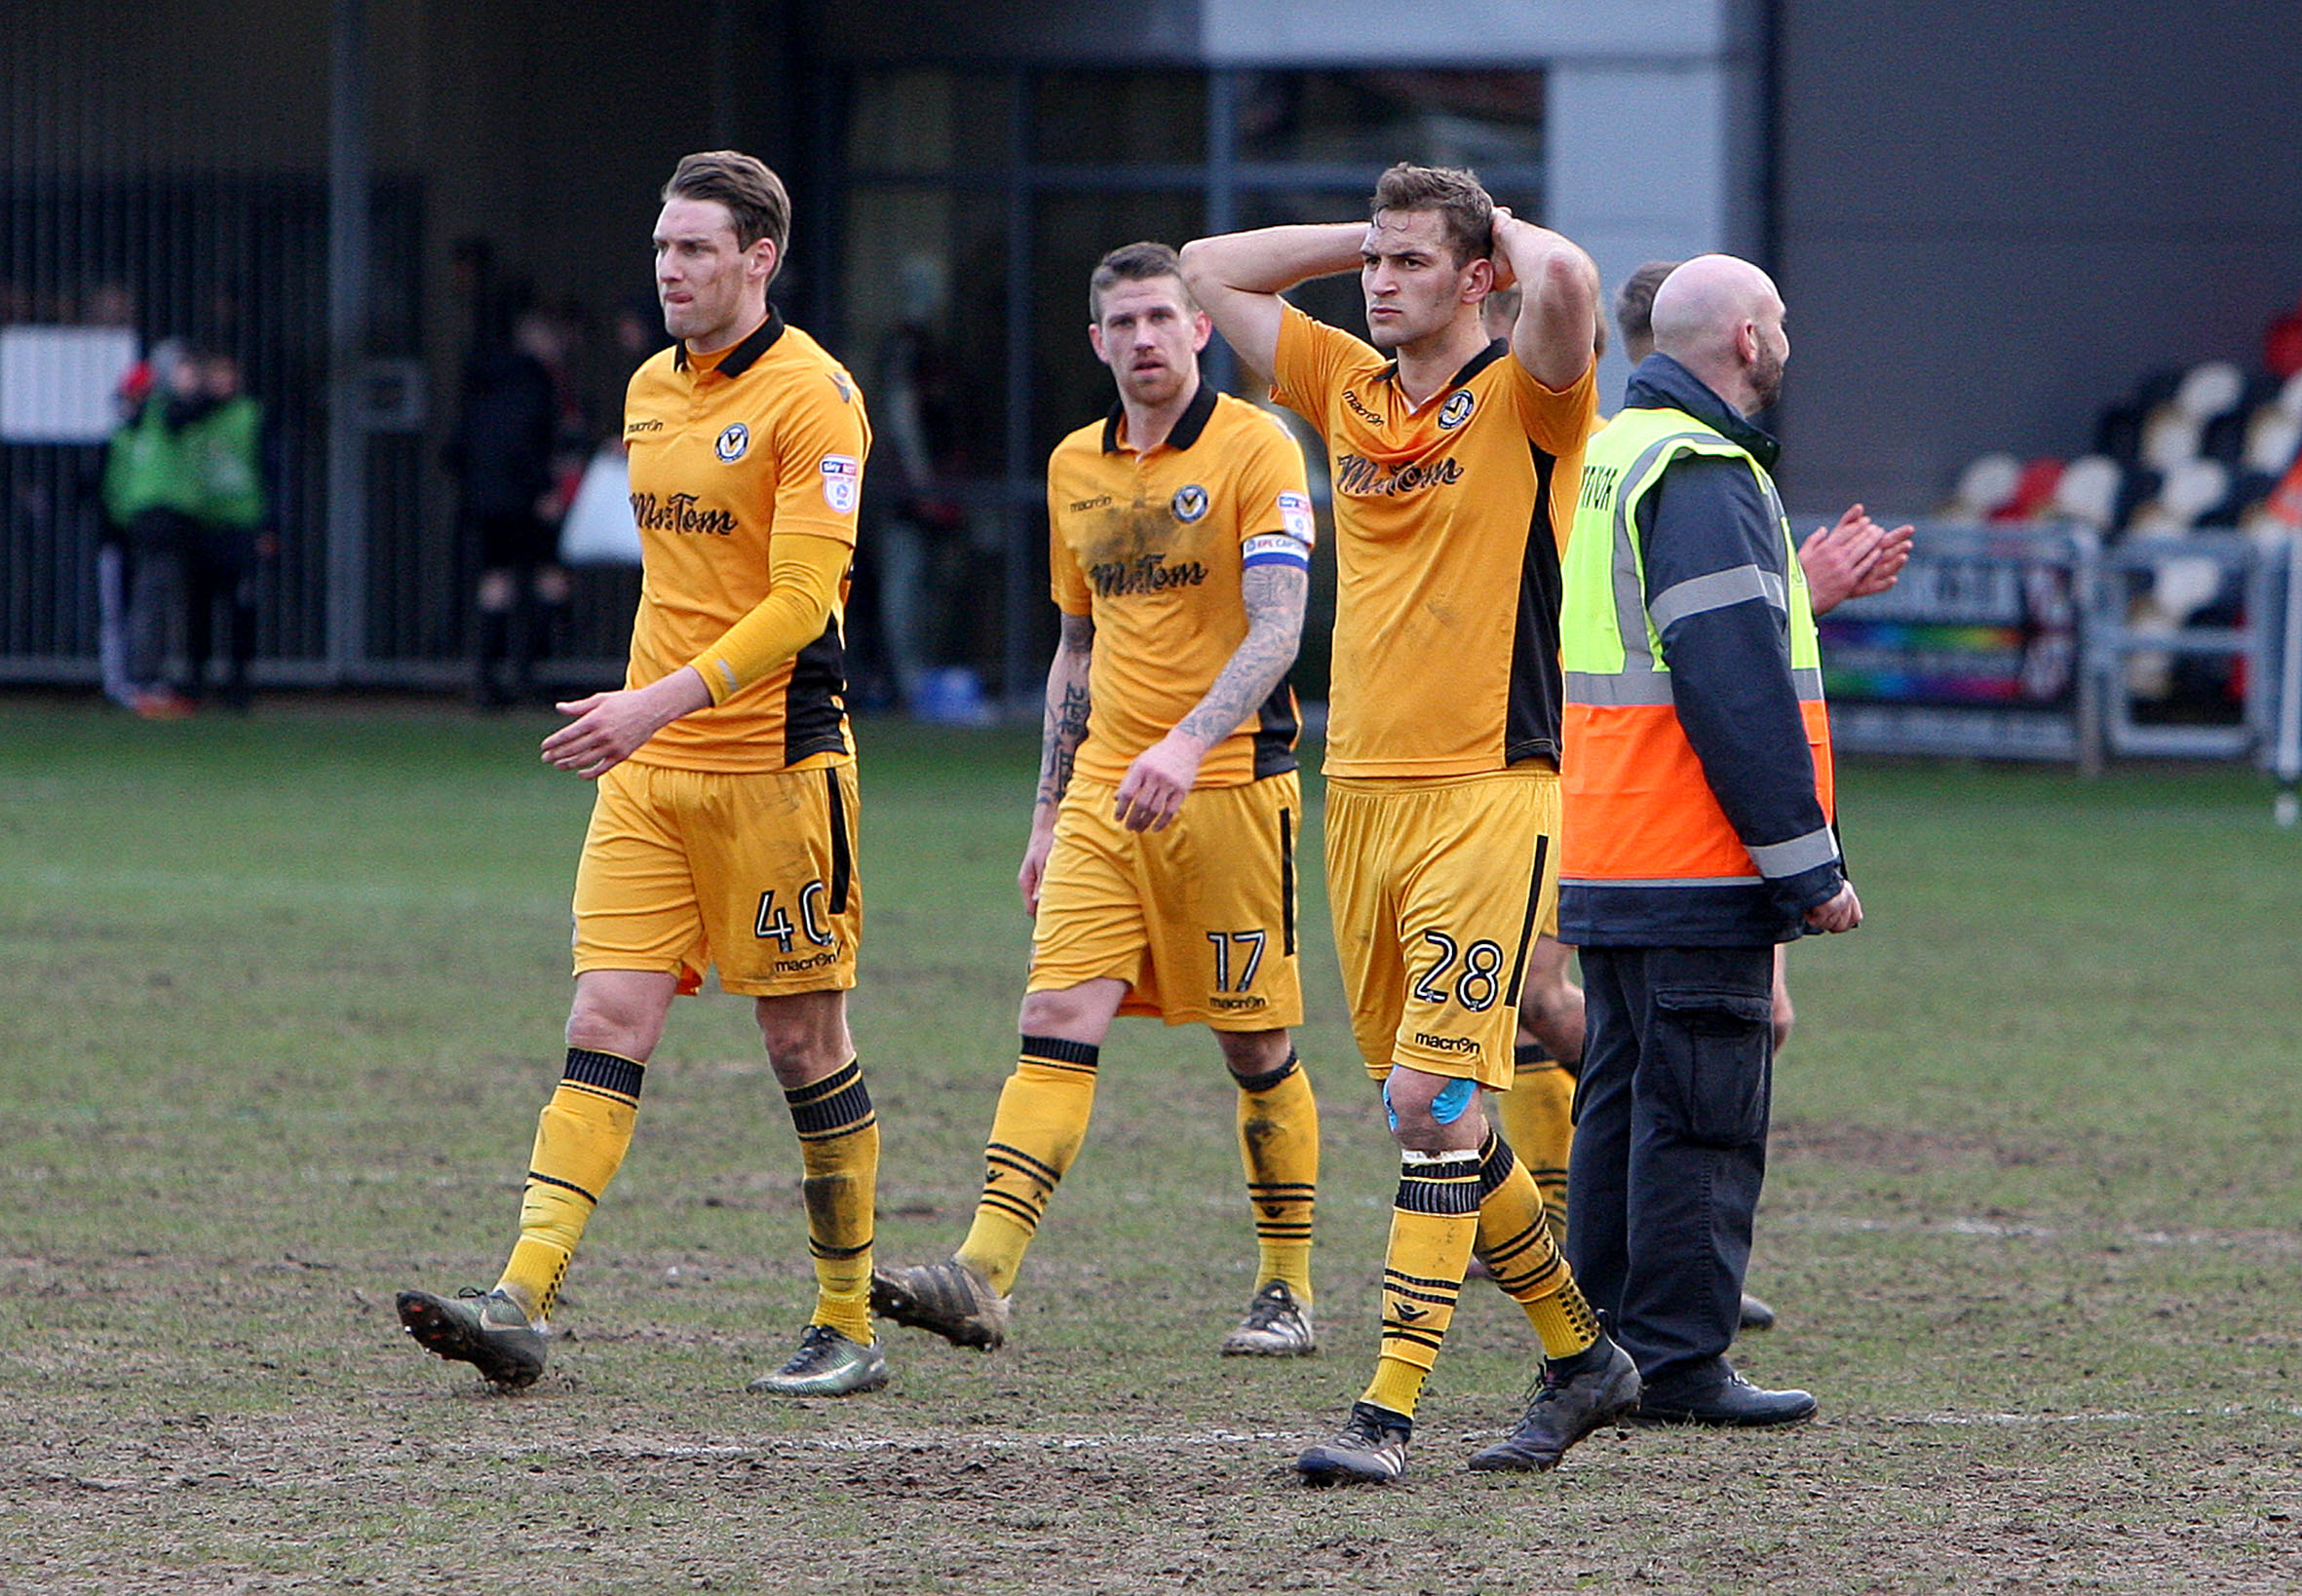 BEATEN: Newport County players react after the 4-0 defeat to Leyton Orient. Picture: Huw Evans Agency